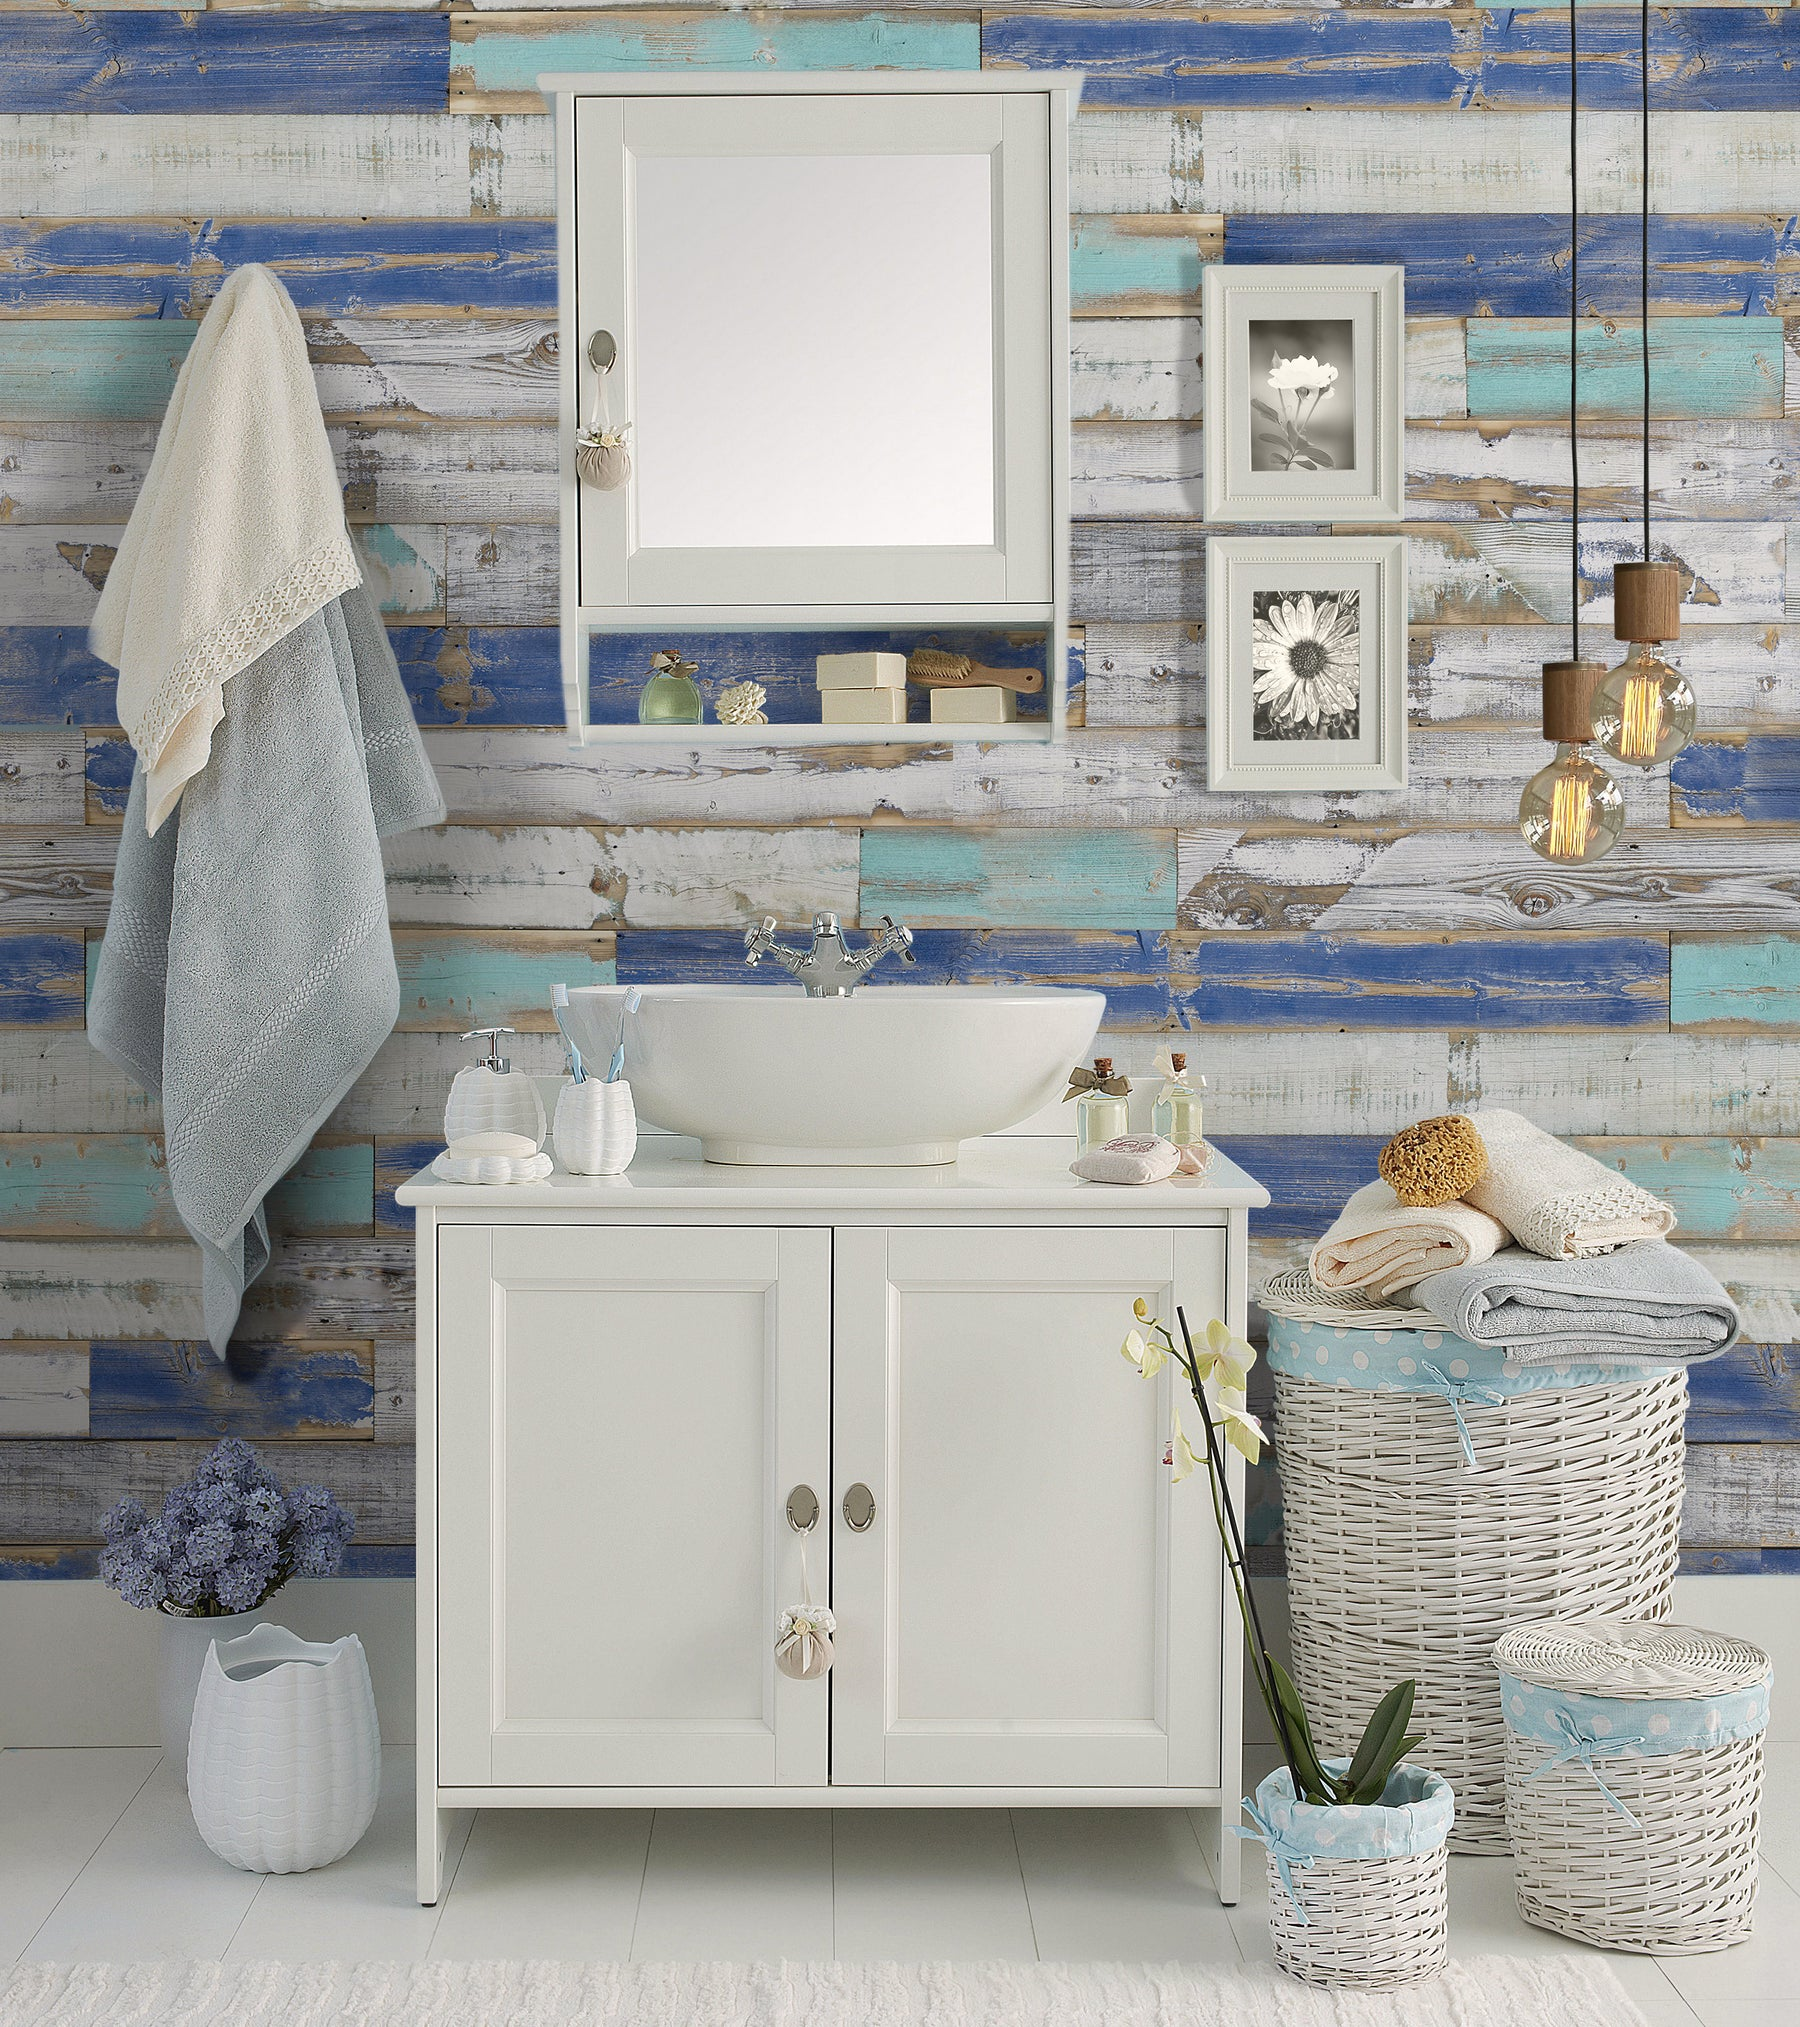 Wall panelling – a fabulous addition in any bathroom!